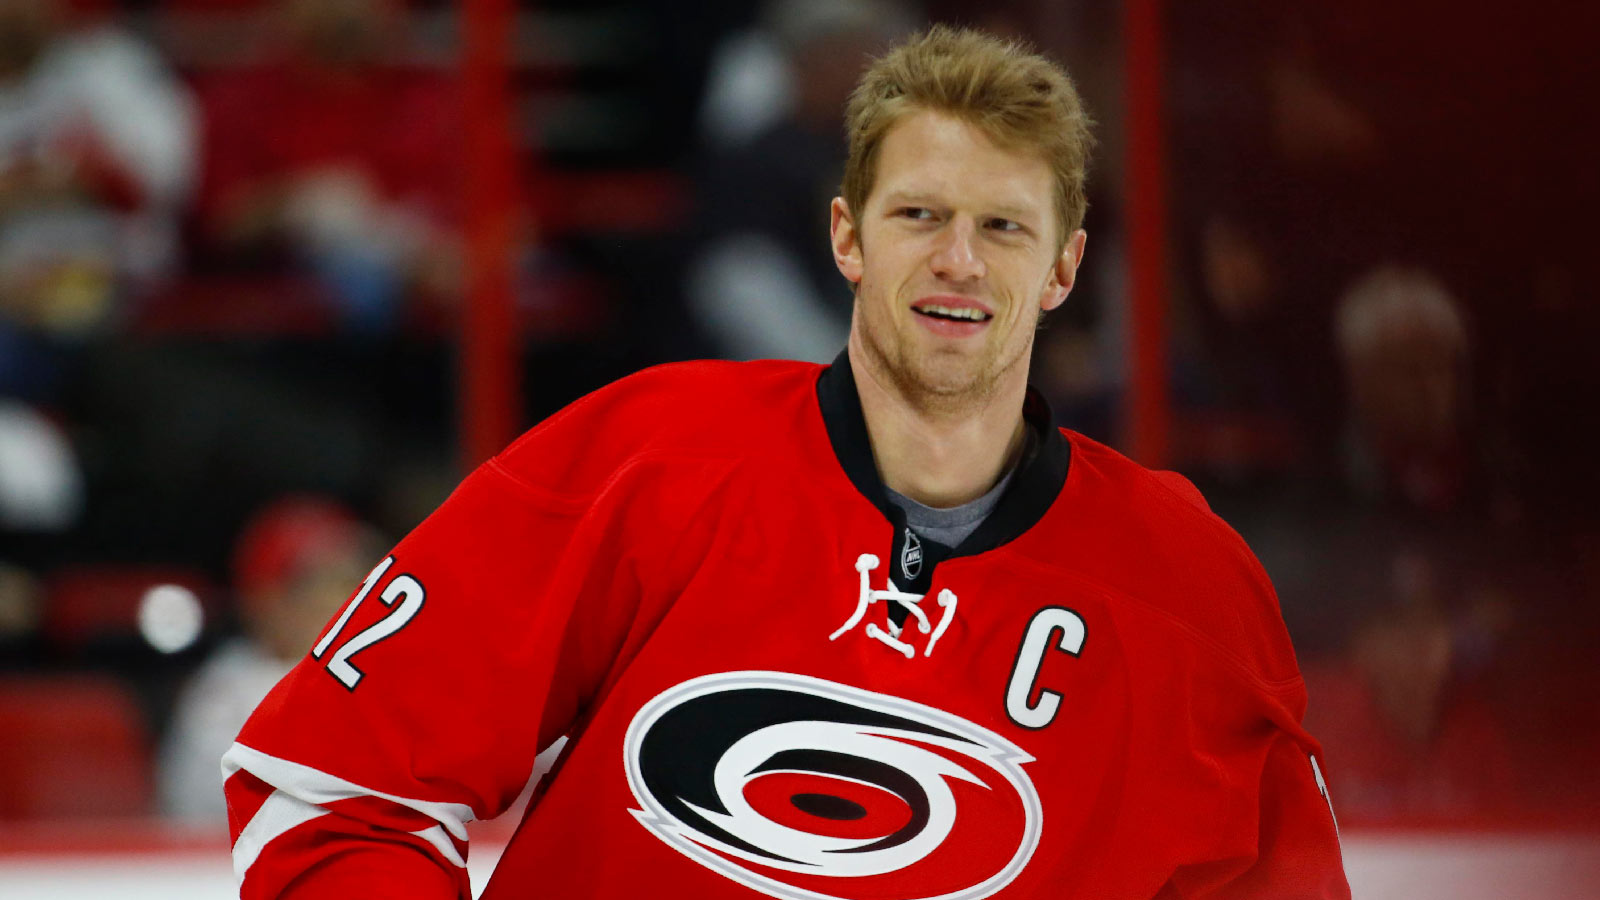 New center Staal excited to find role with Wild